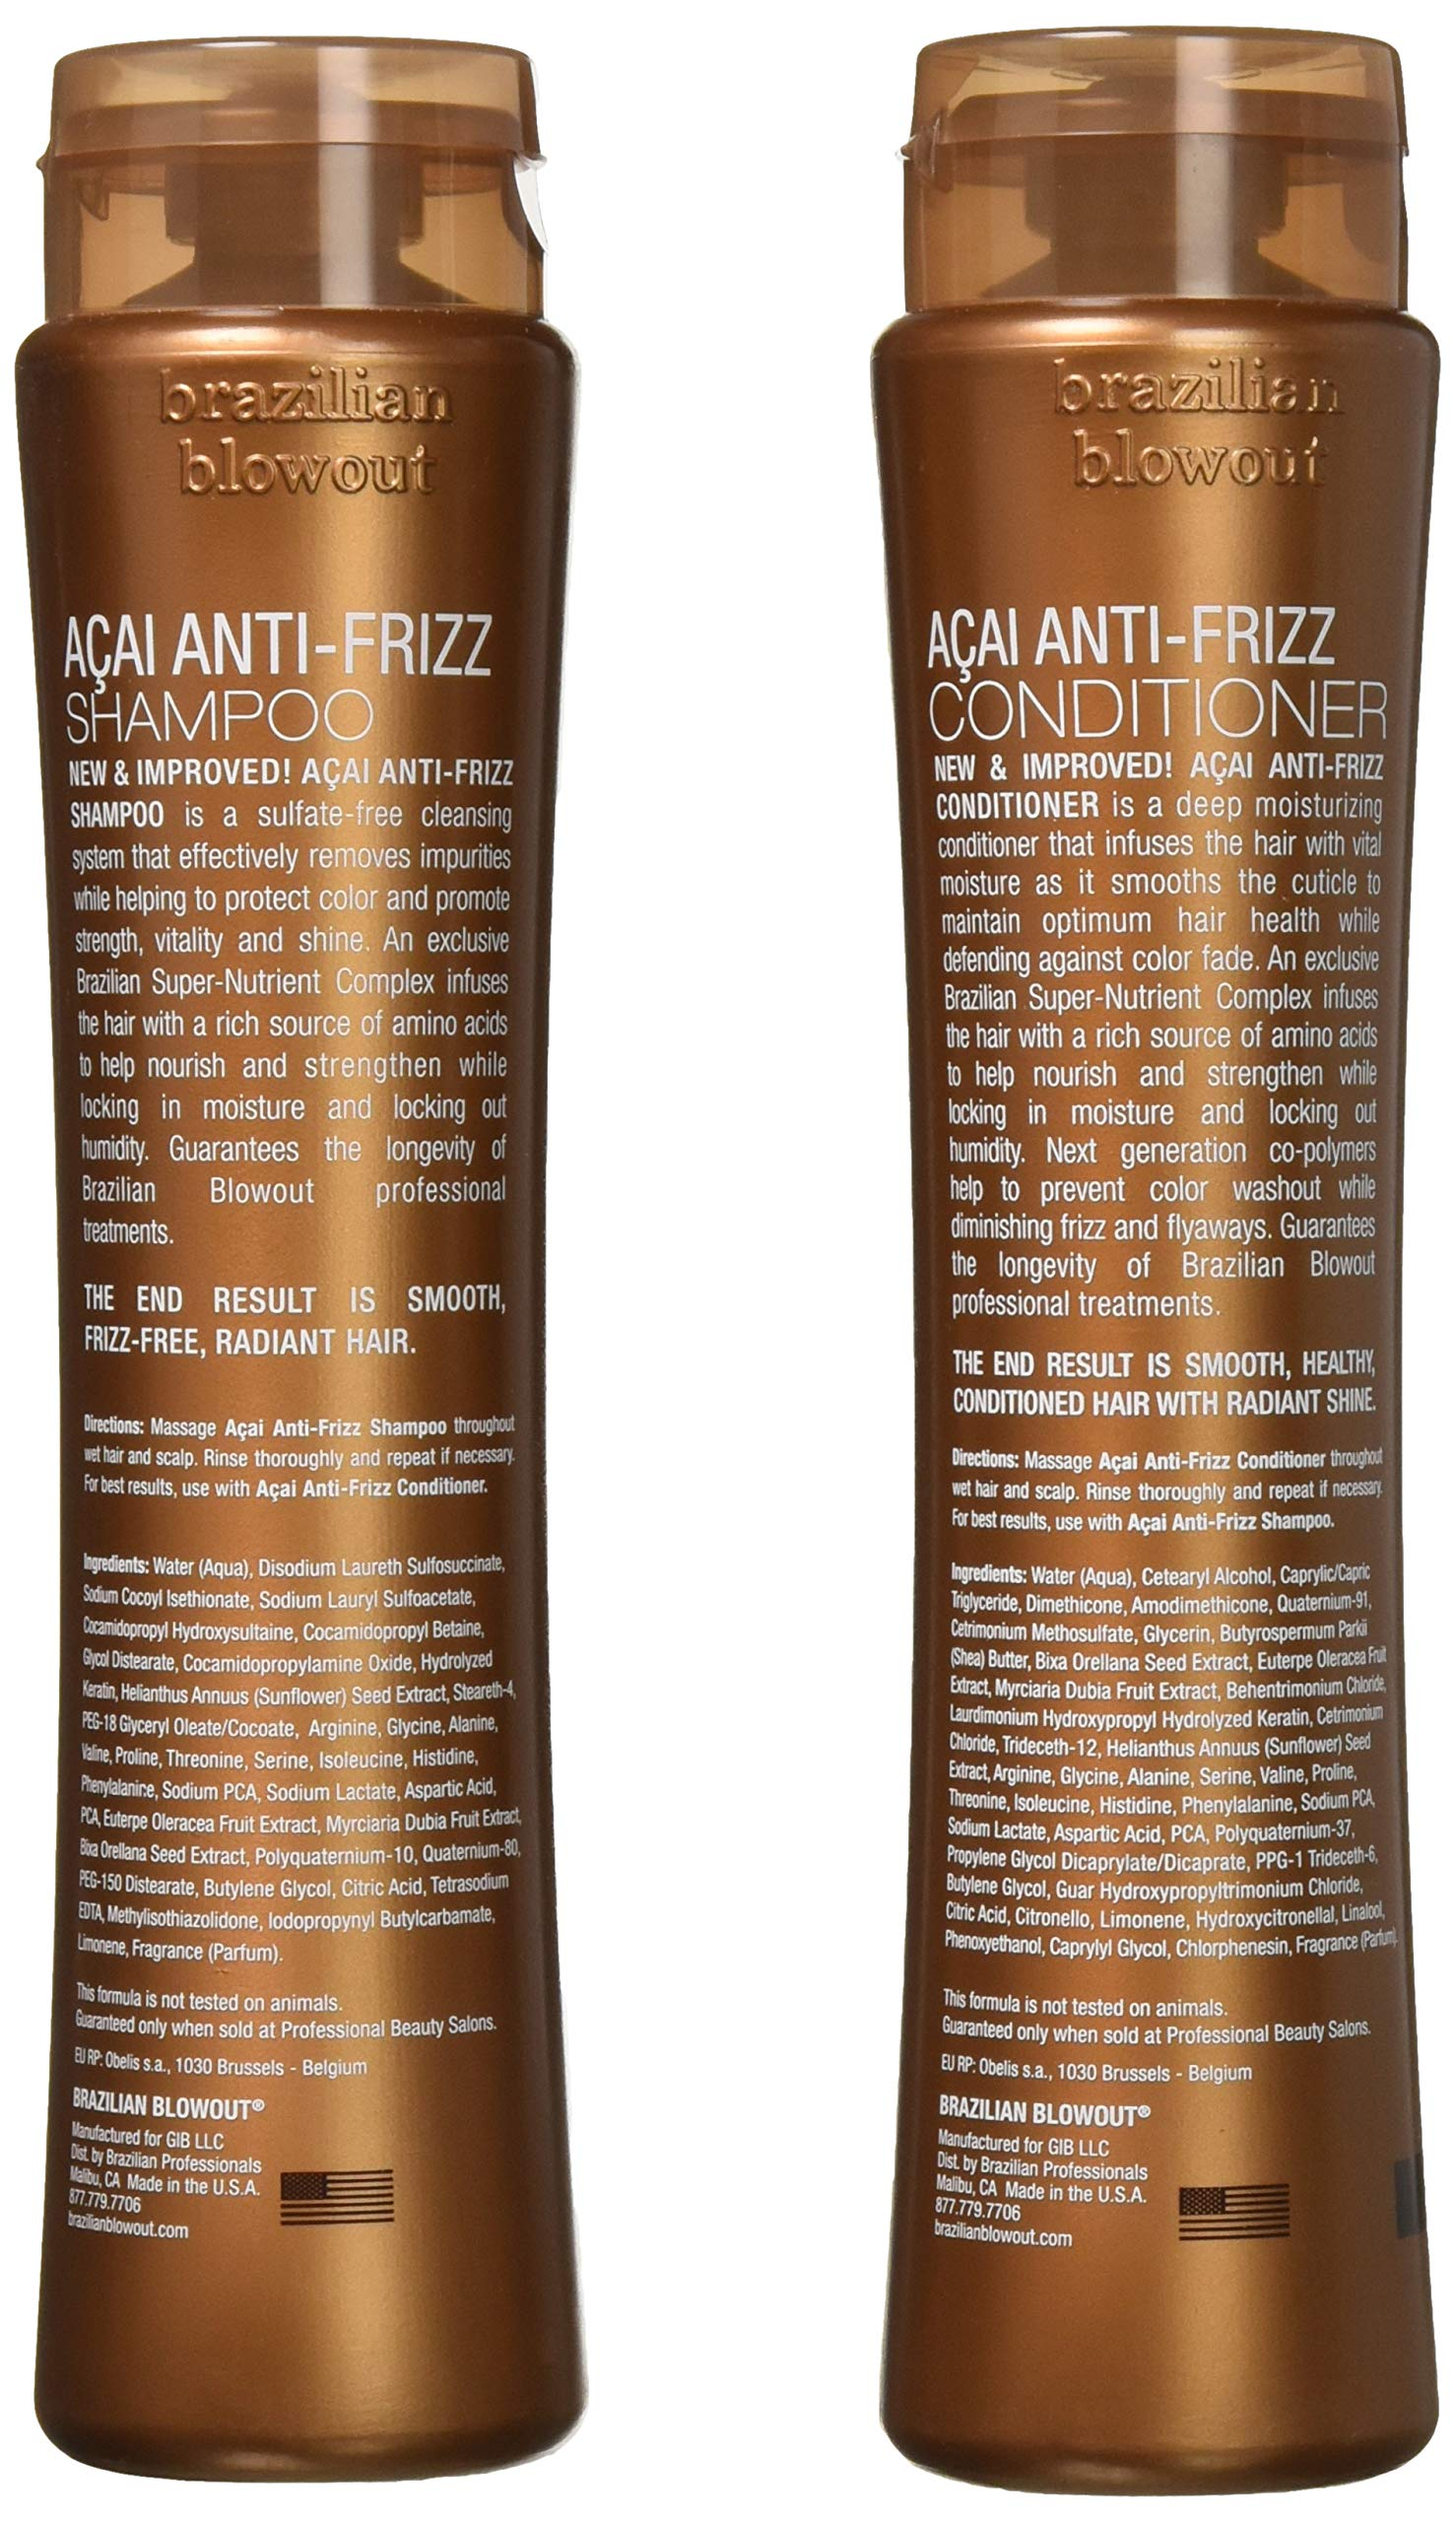 Brazilian Blowout Acai Anti-Frizz Shampoo & Conditioner 12oz bottles by Brazilian Blowout (Image #3)